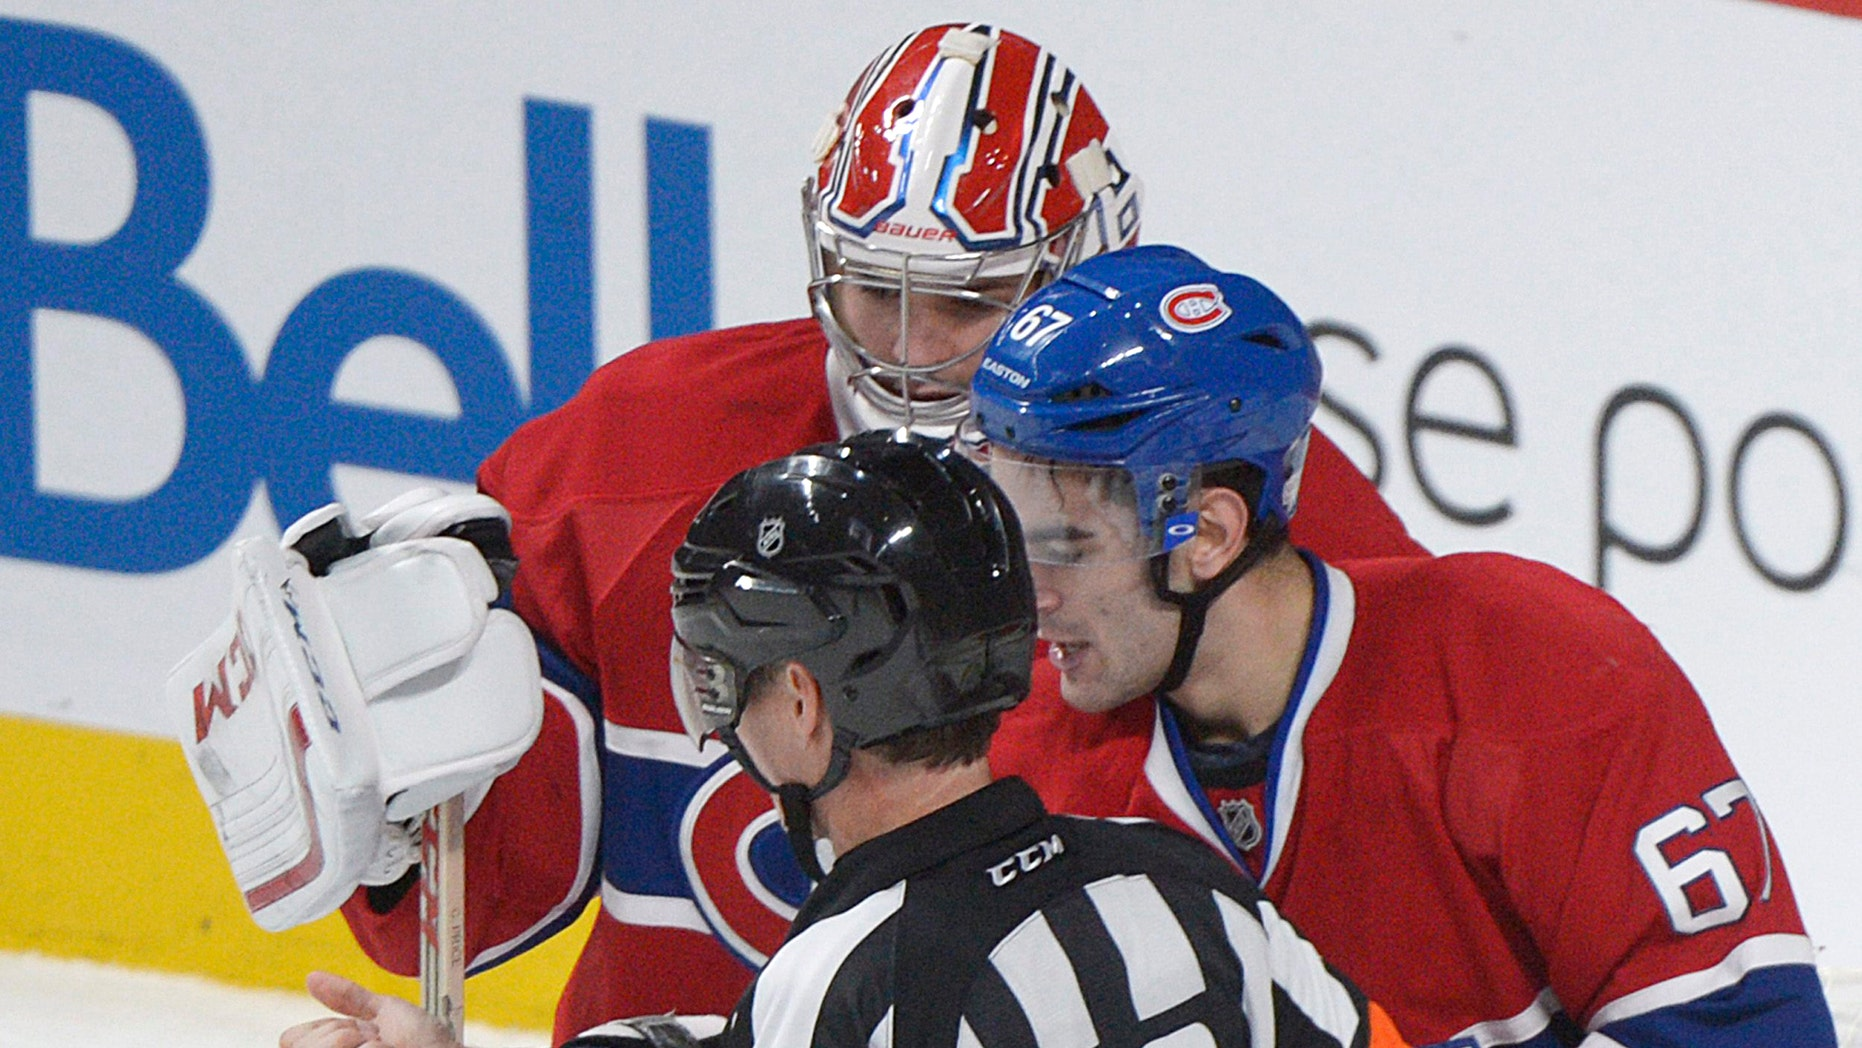 Montreal Canadiens' Max Pacioretty, right, shows his arm to a referee following an incident with Toronto Maple Leafs' Mikhail Grabovski as Canadiens' goaltender Carey Price looks on during third period NHL hockey action in Montreal, Saturday, Feb. 9, 2013. Grabovski has been accused of biting Pacioretty's arm. (AP Photo/The Canadian Press, Graham Hughes)